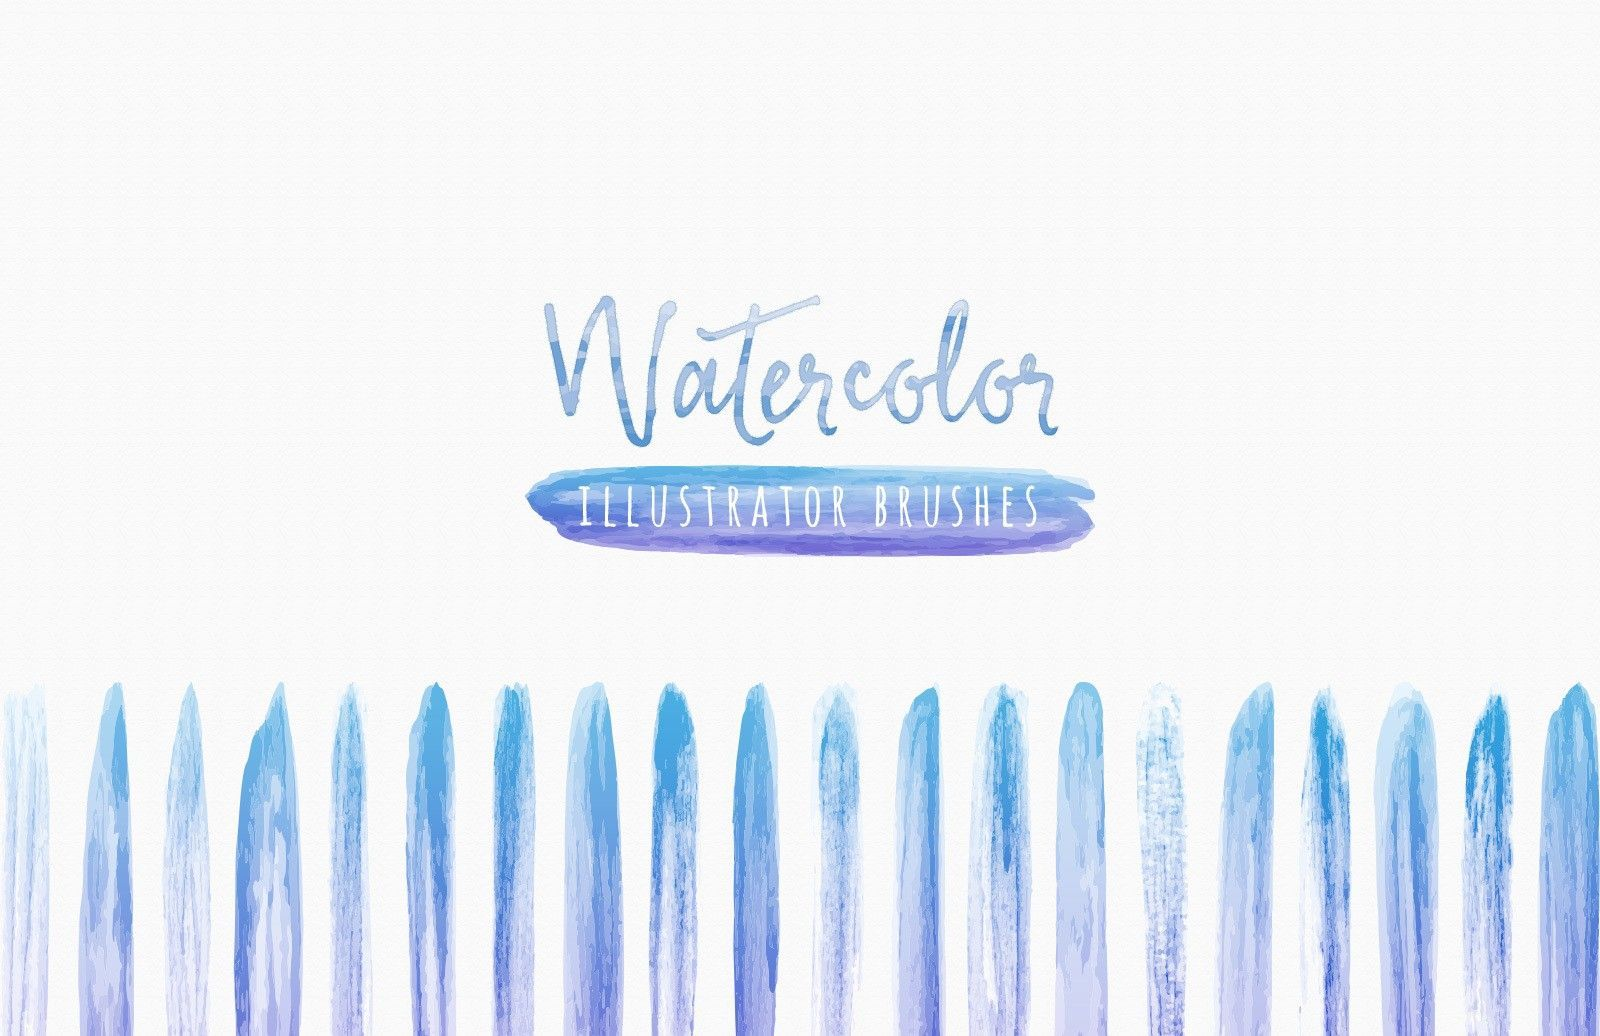 Watercolor Brushes For Illustrator Illustration Vector Brush